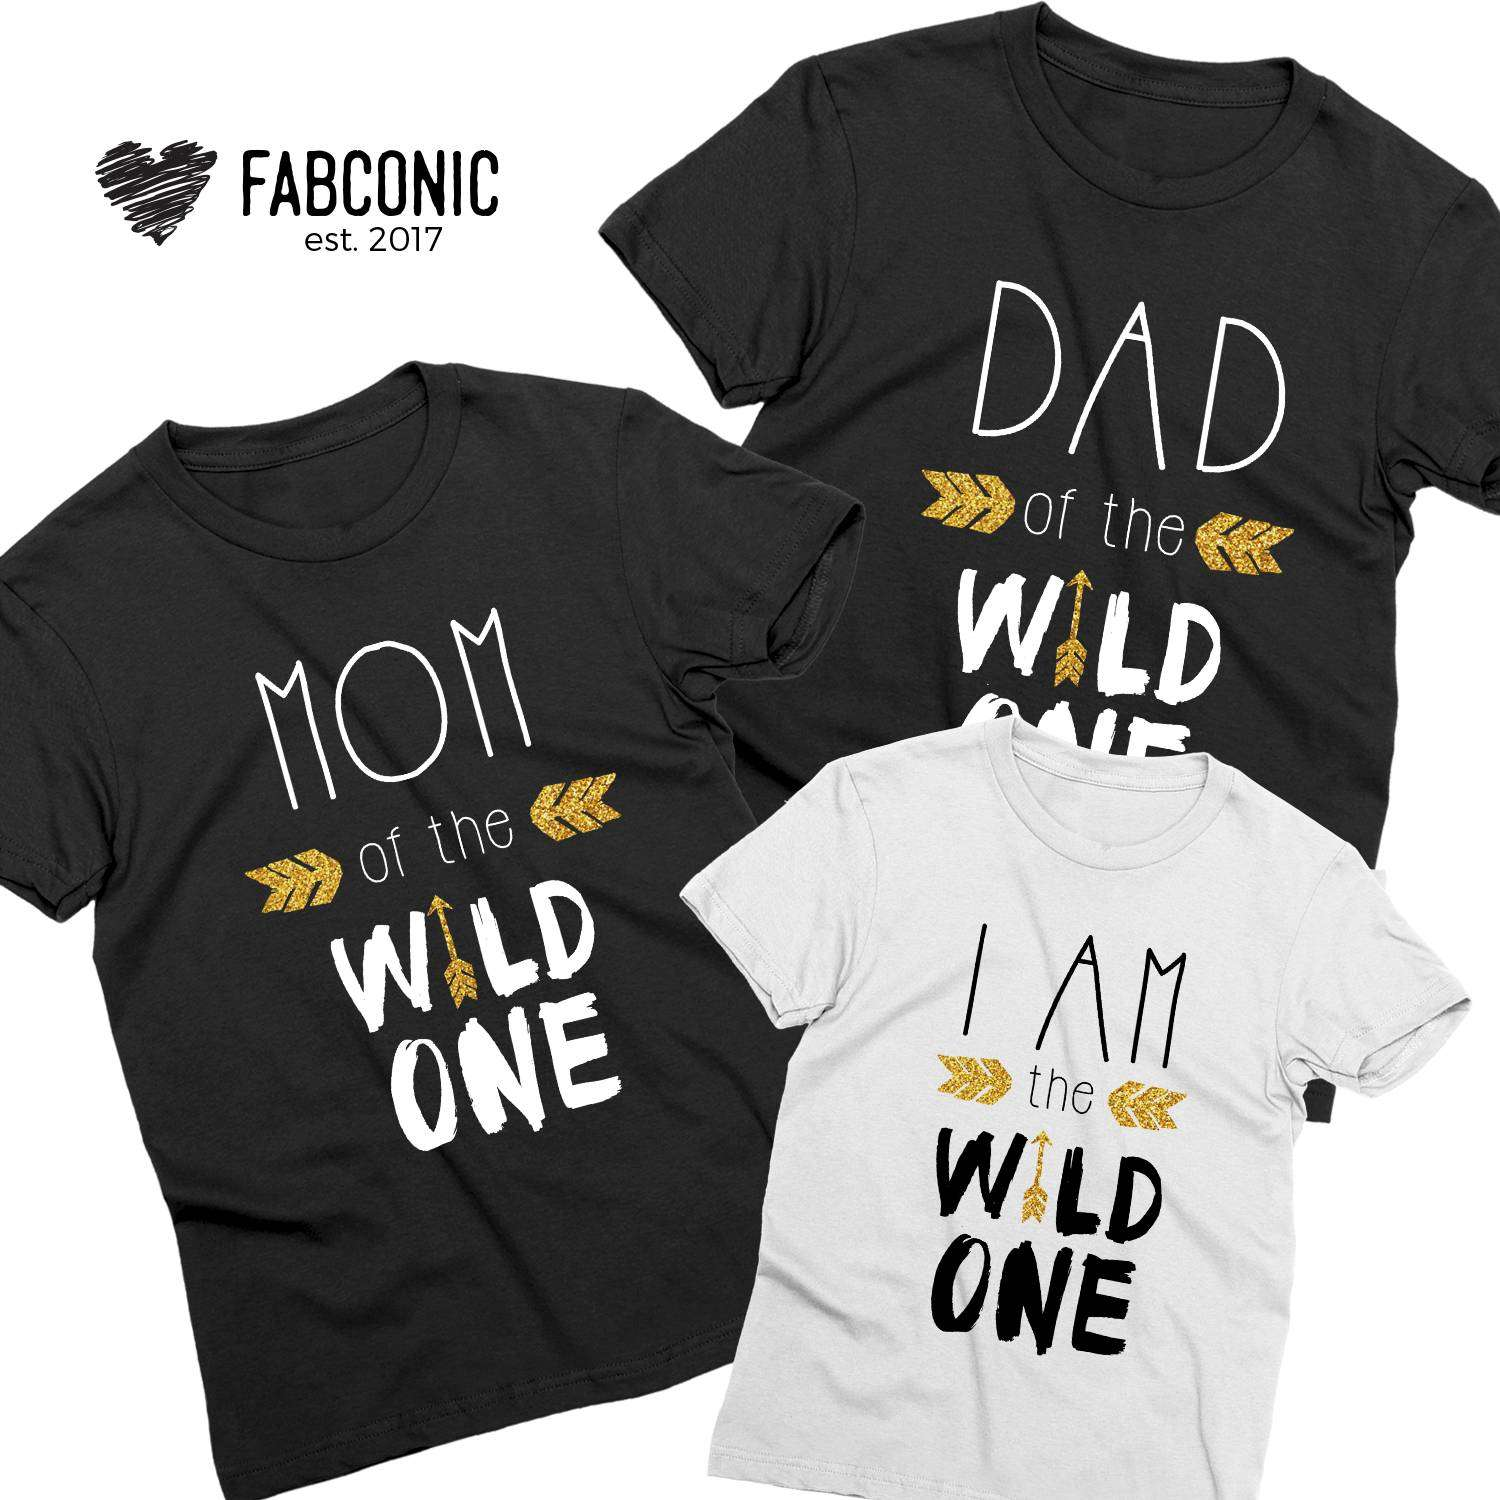 e8ec544a Dad of the Wild One, Mom of the Wild One, I am the Wild One, Family ...